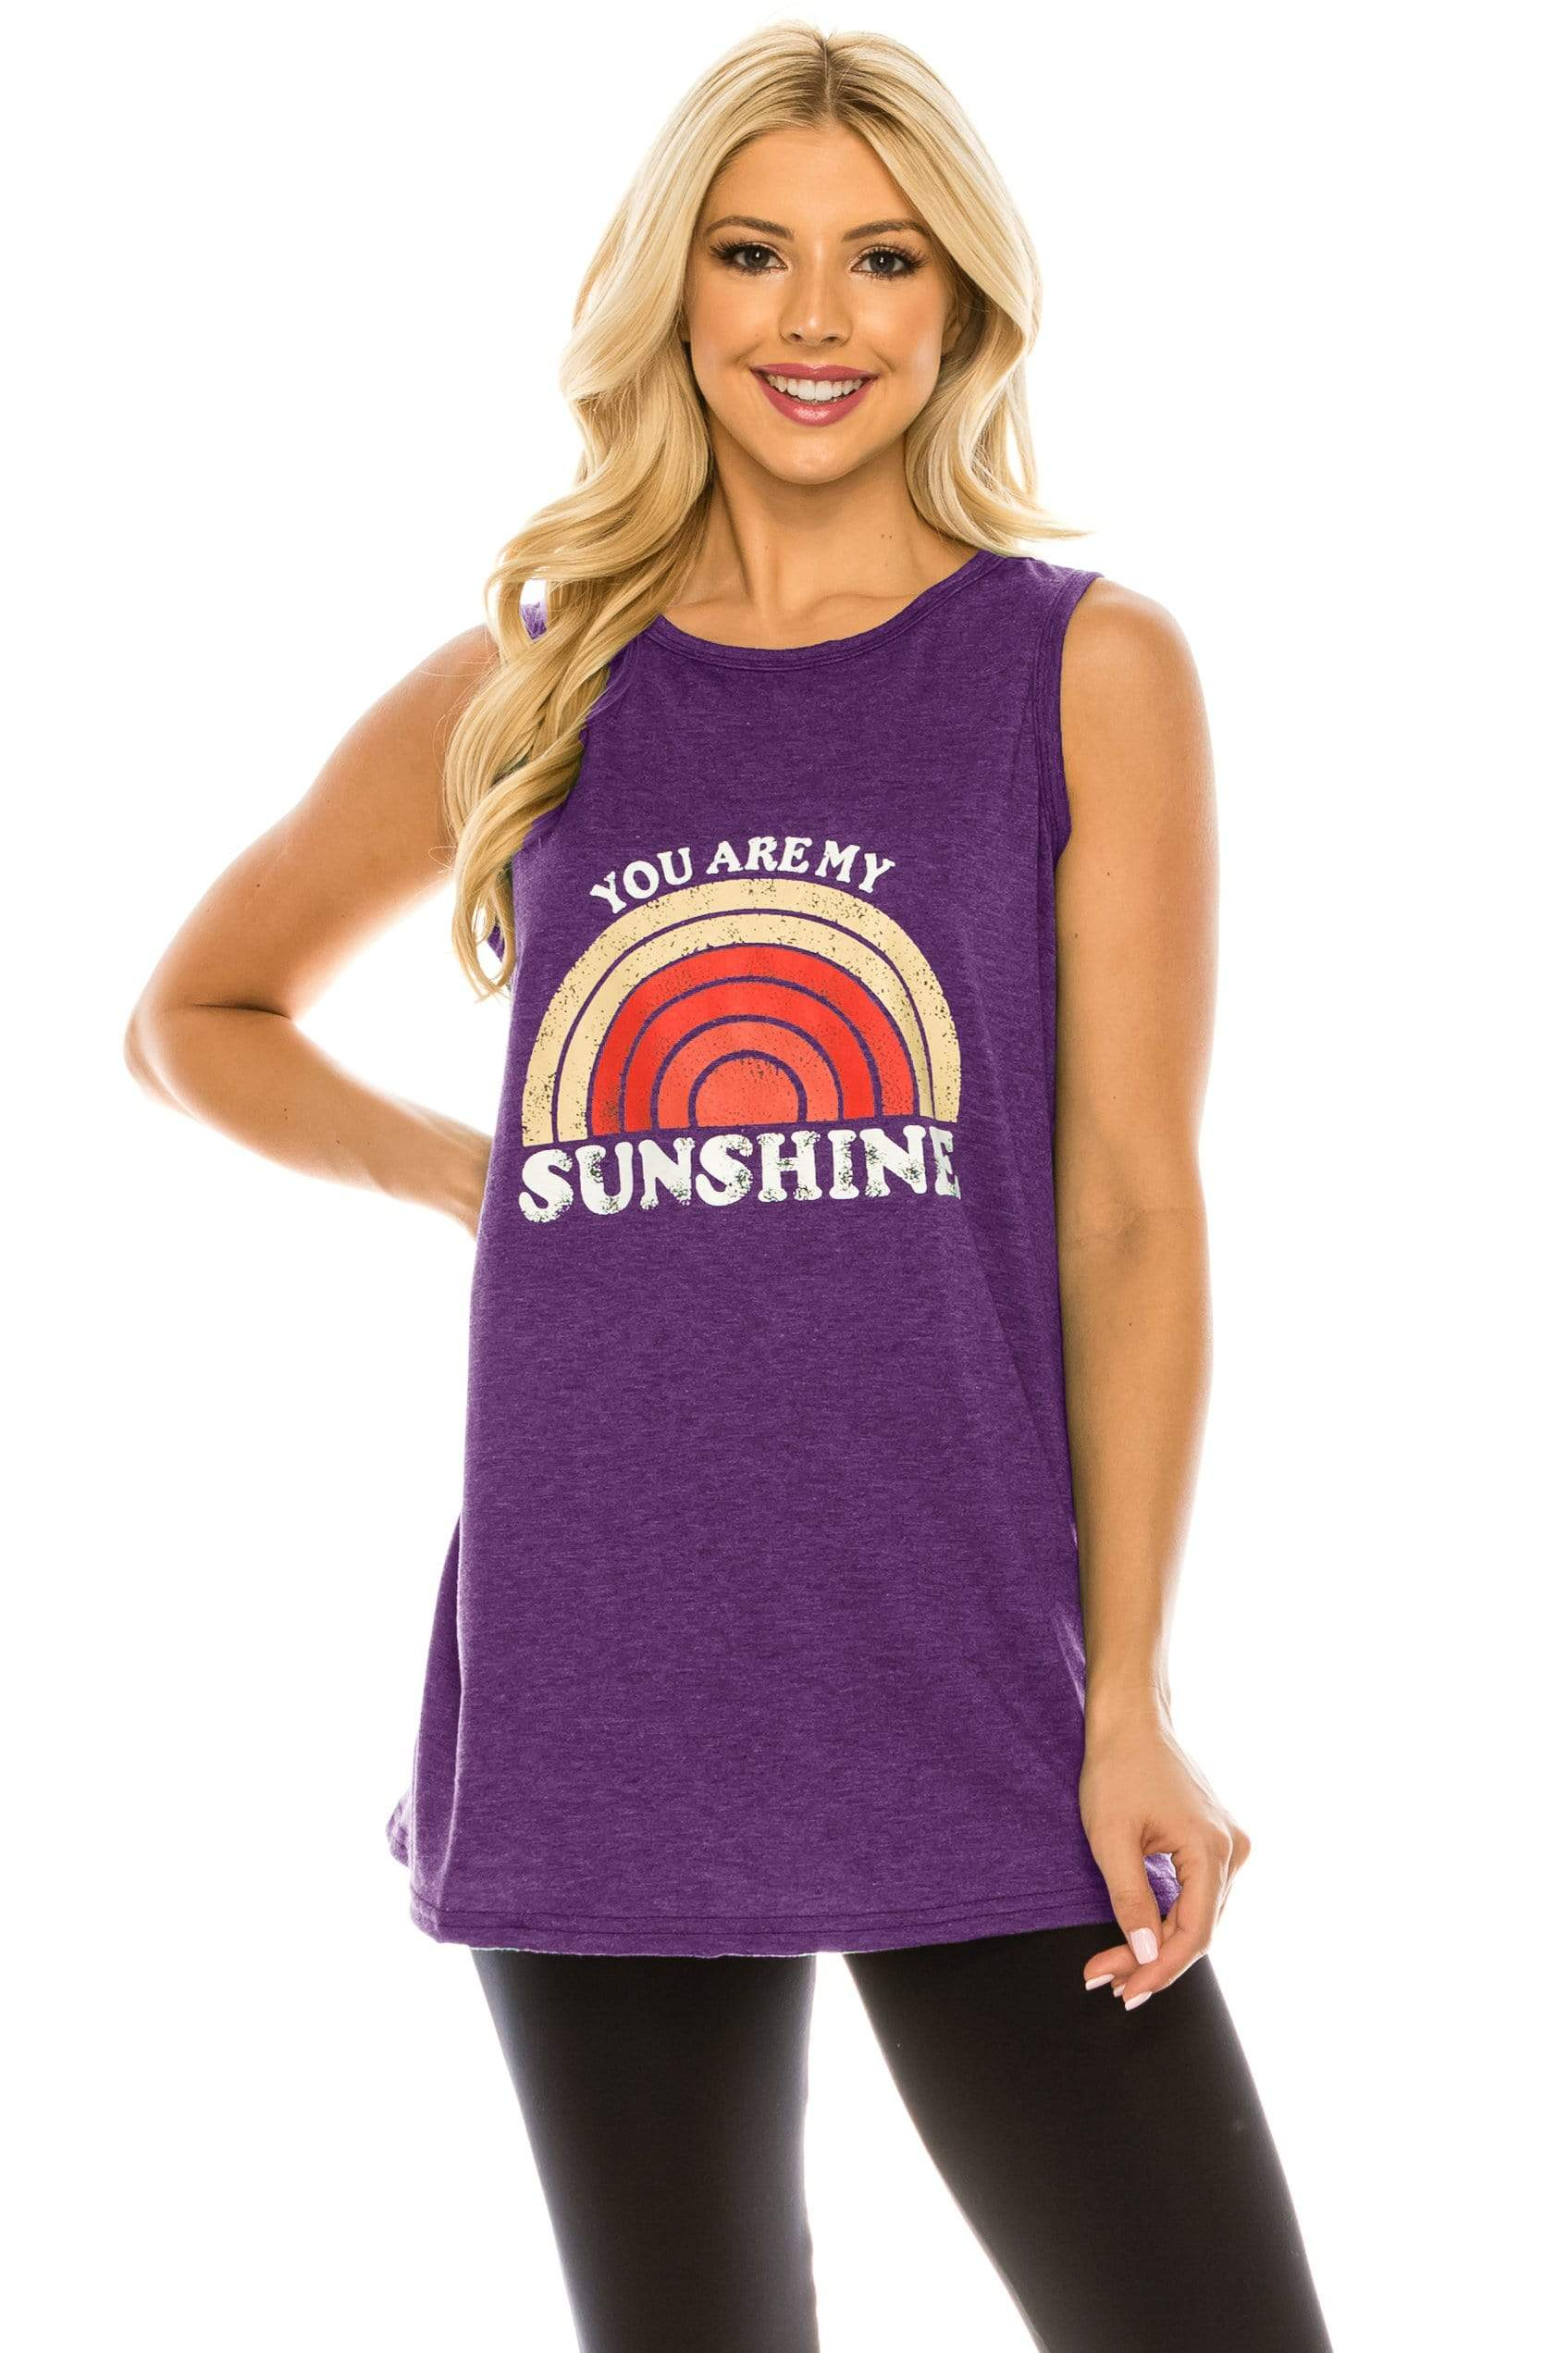 Haute Edition WOMEN'S TOP PURPLE / S Haute Edition Women's Sunshine Loose Fit Tank top. Plus size available